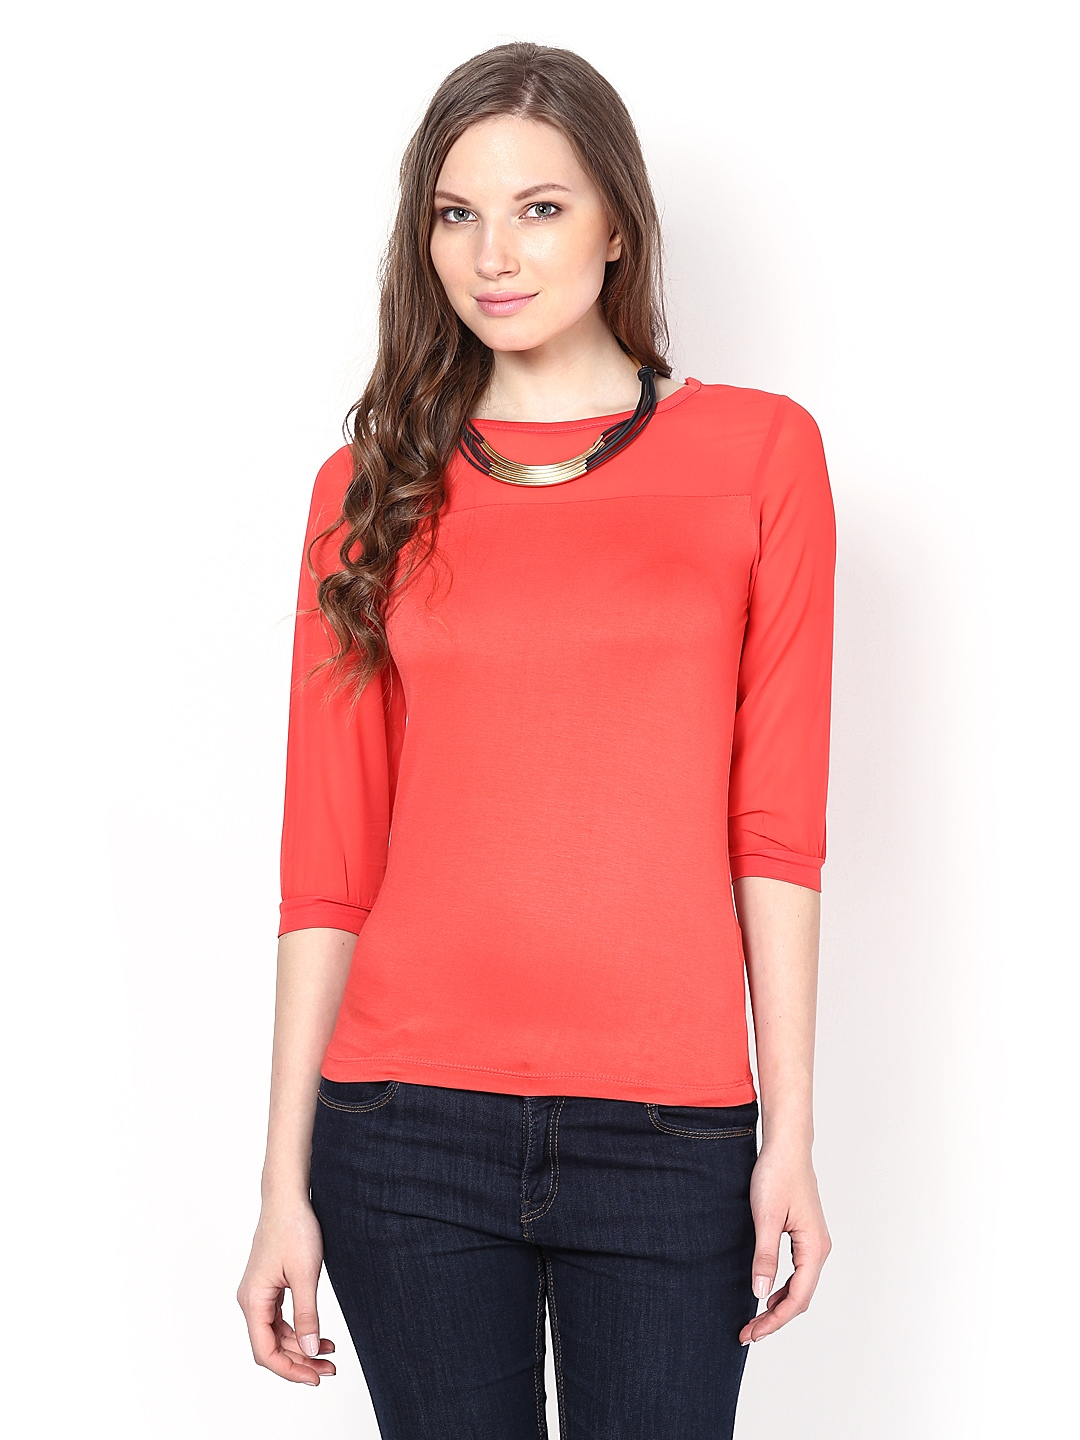 Free shipping Red Tops Online Store. Best Tops for sale. Cheap Red Tops with excellent quality and fast delivery. | cheswick-stand.tk